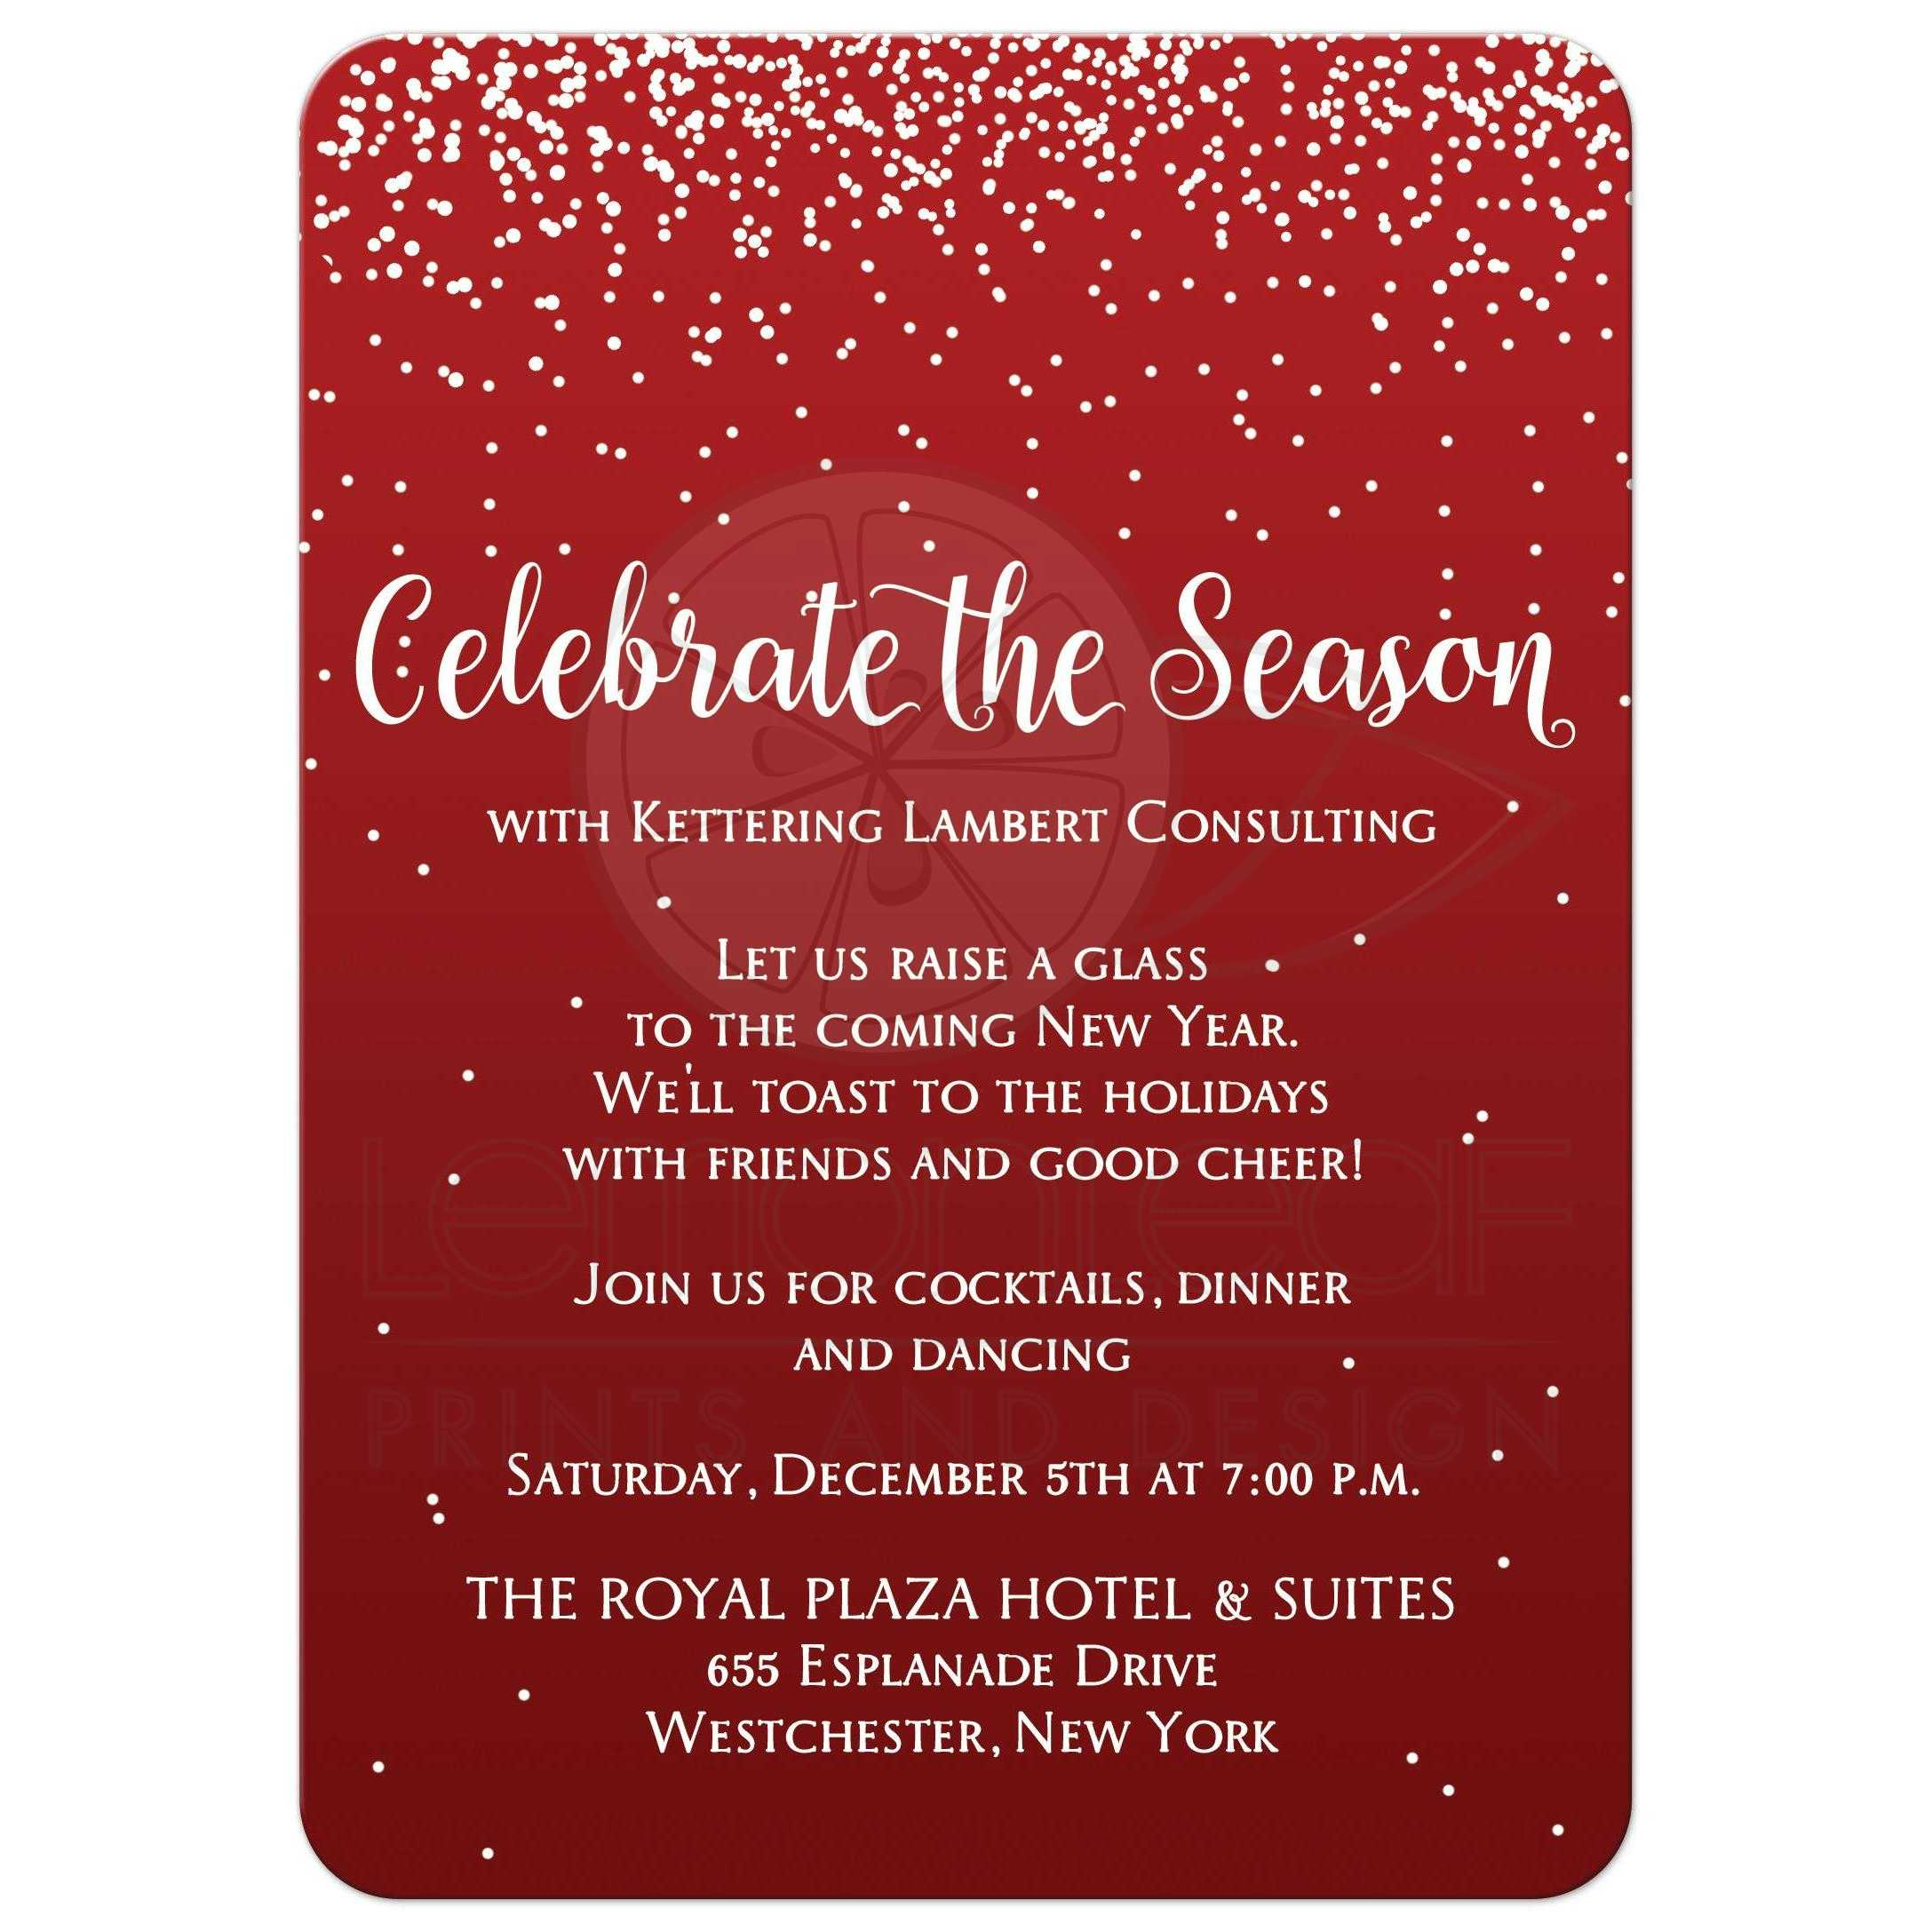 company holiday party invitations - Yelom.myphonecompany.co